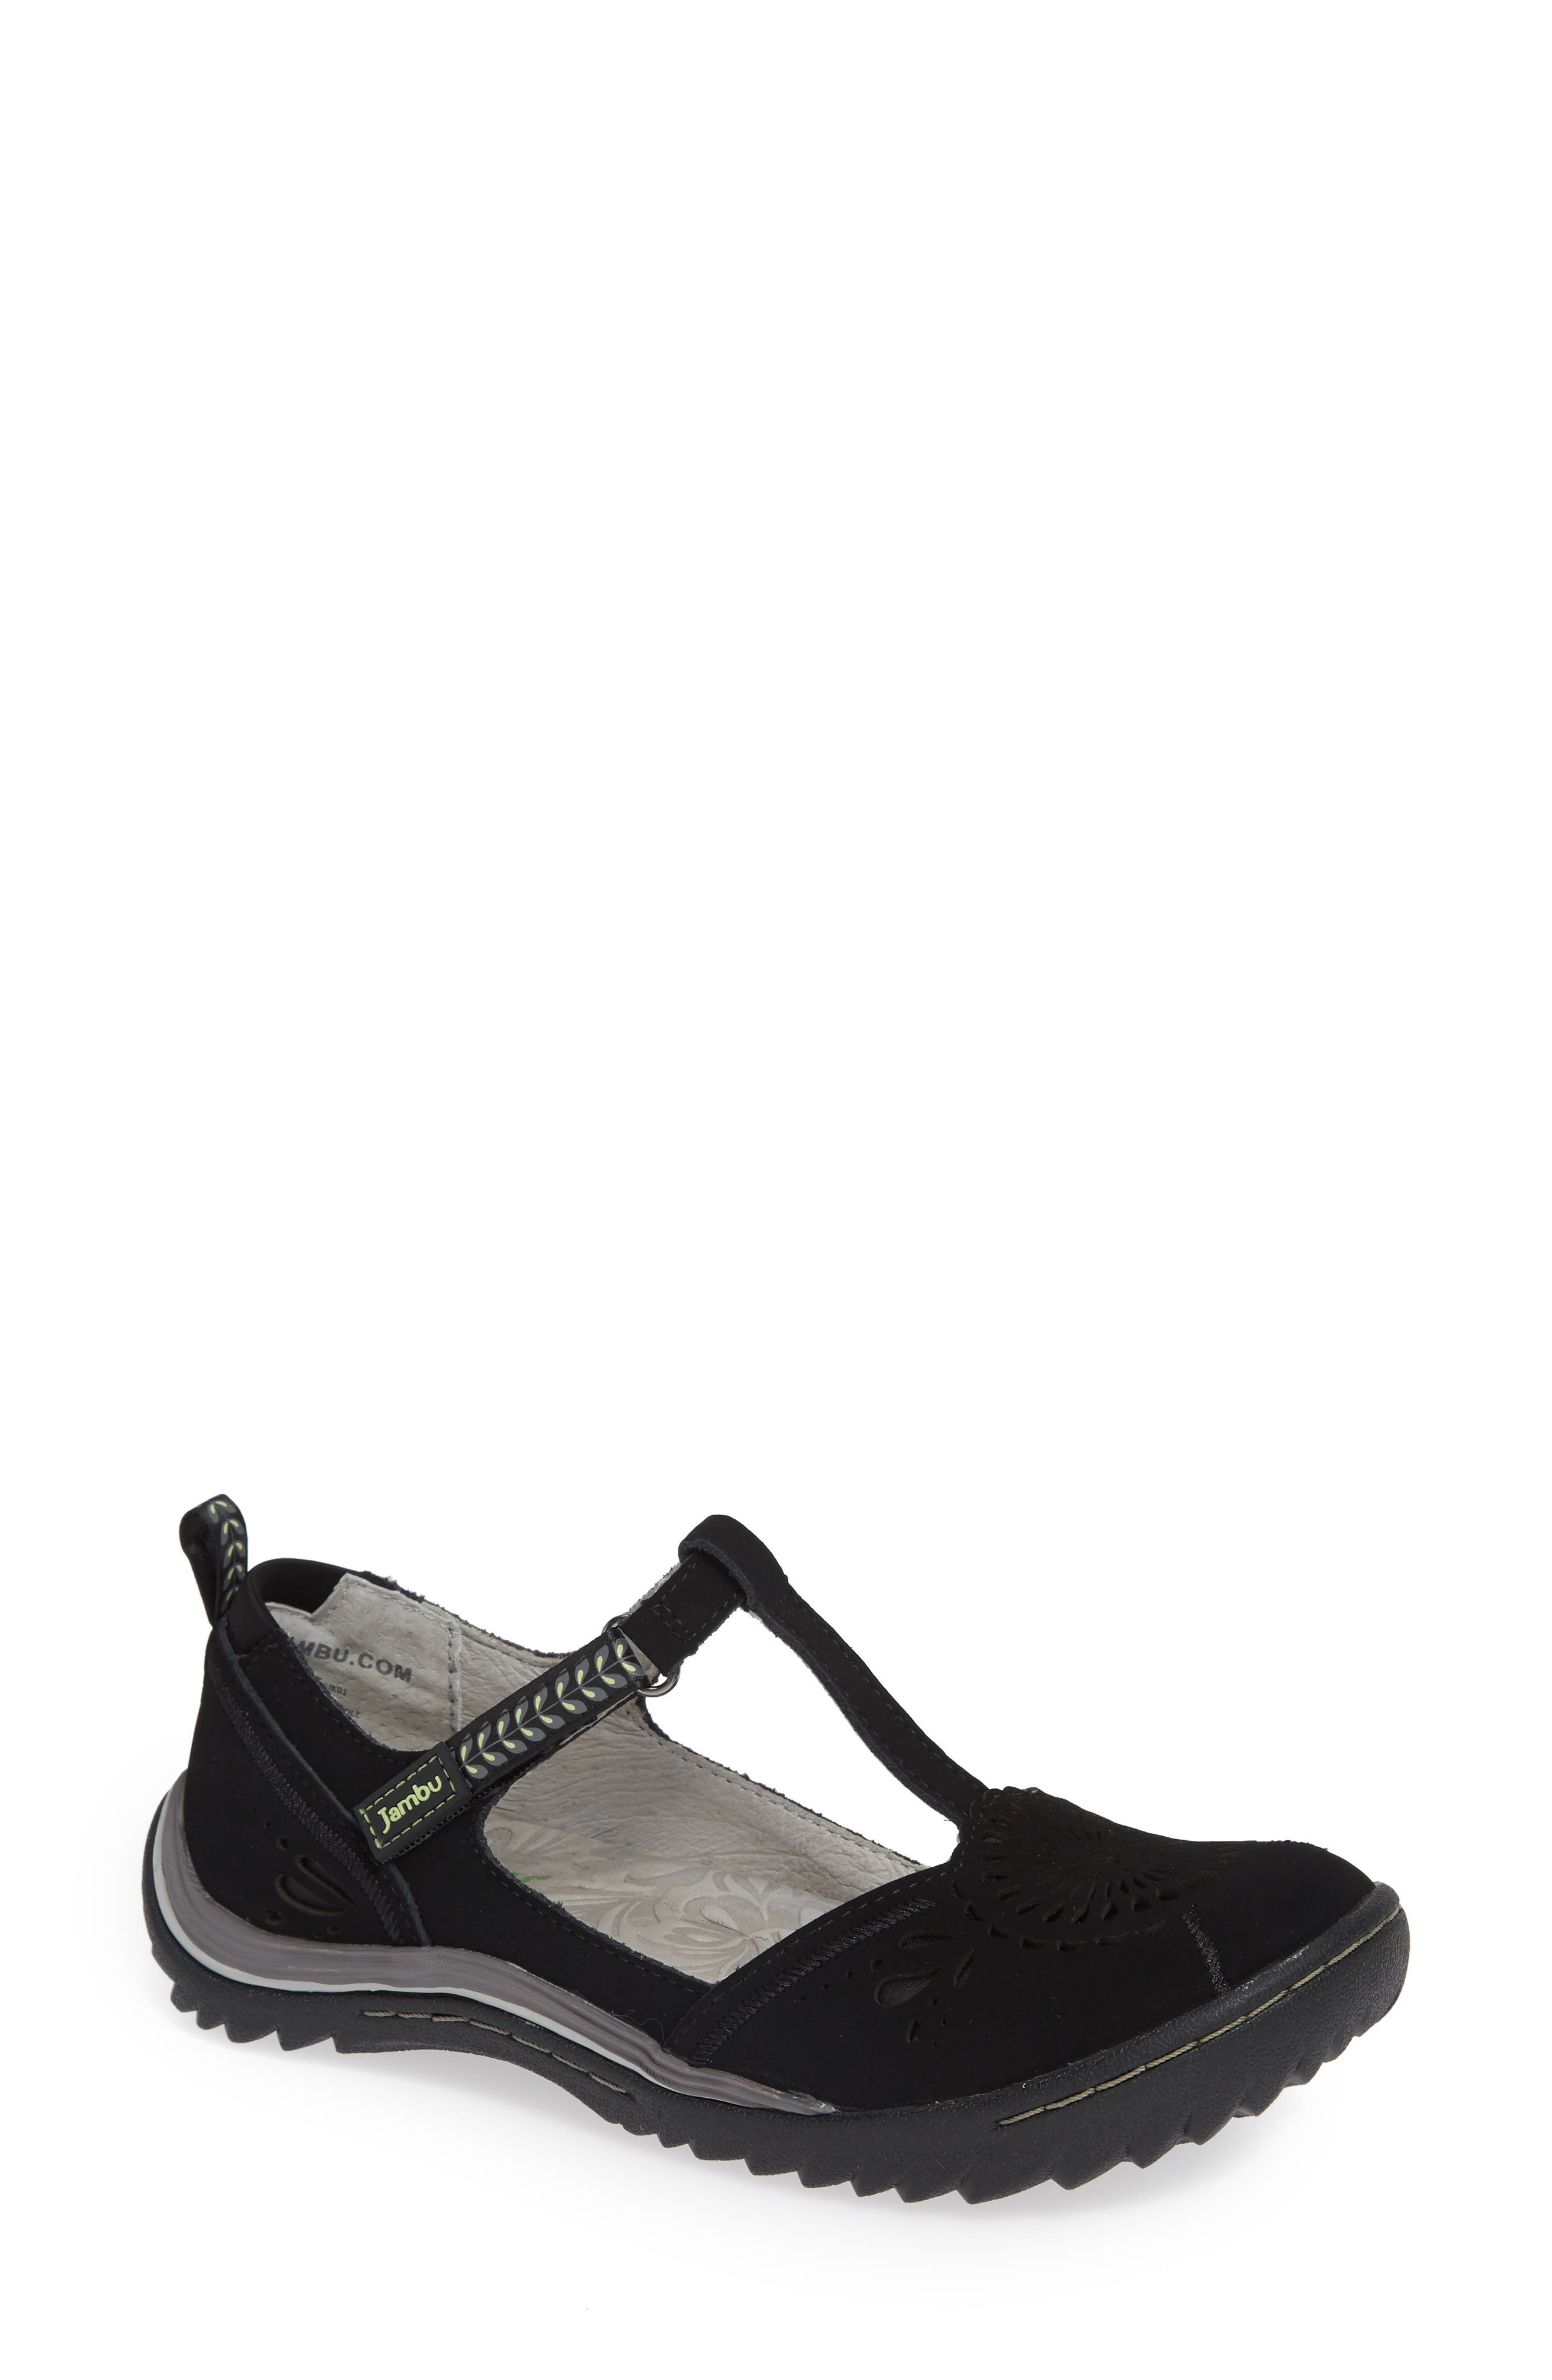 Sunkist Strappy Sneaker,                         Main,                         color, BLACK/ CHIVE NUBUCK LEATHER